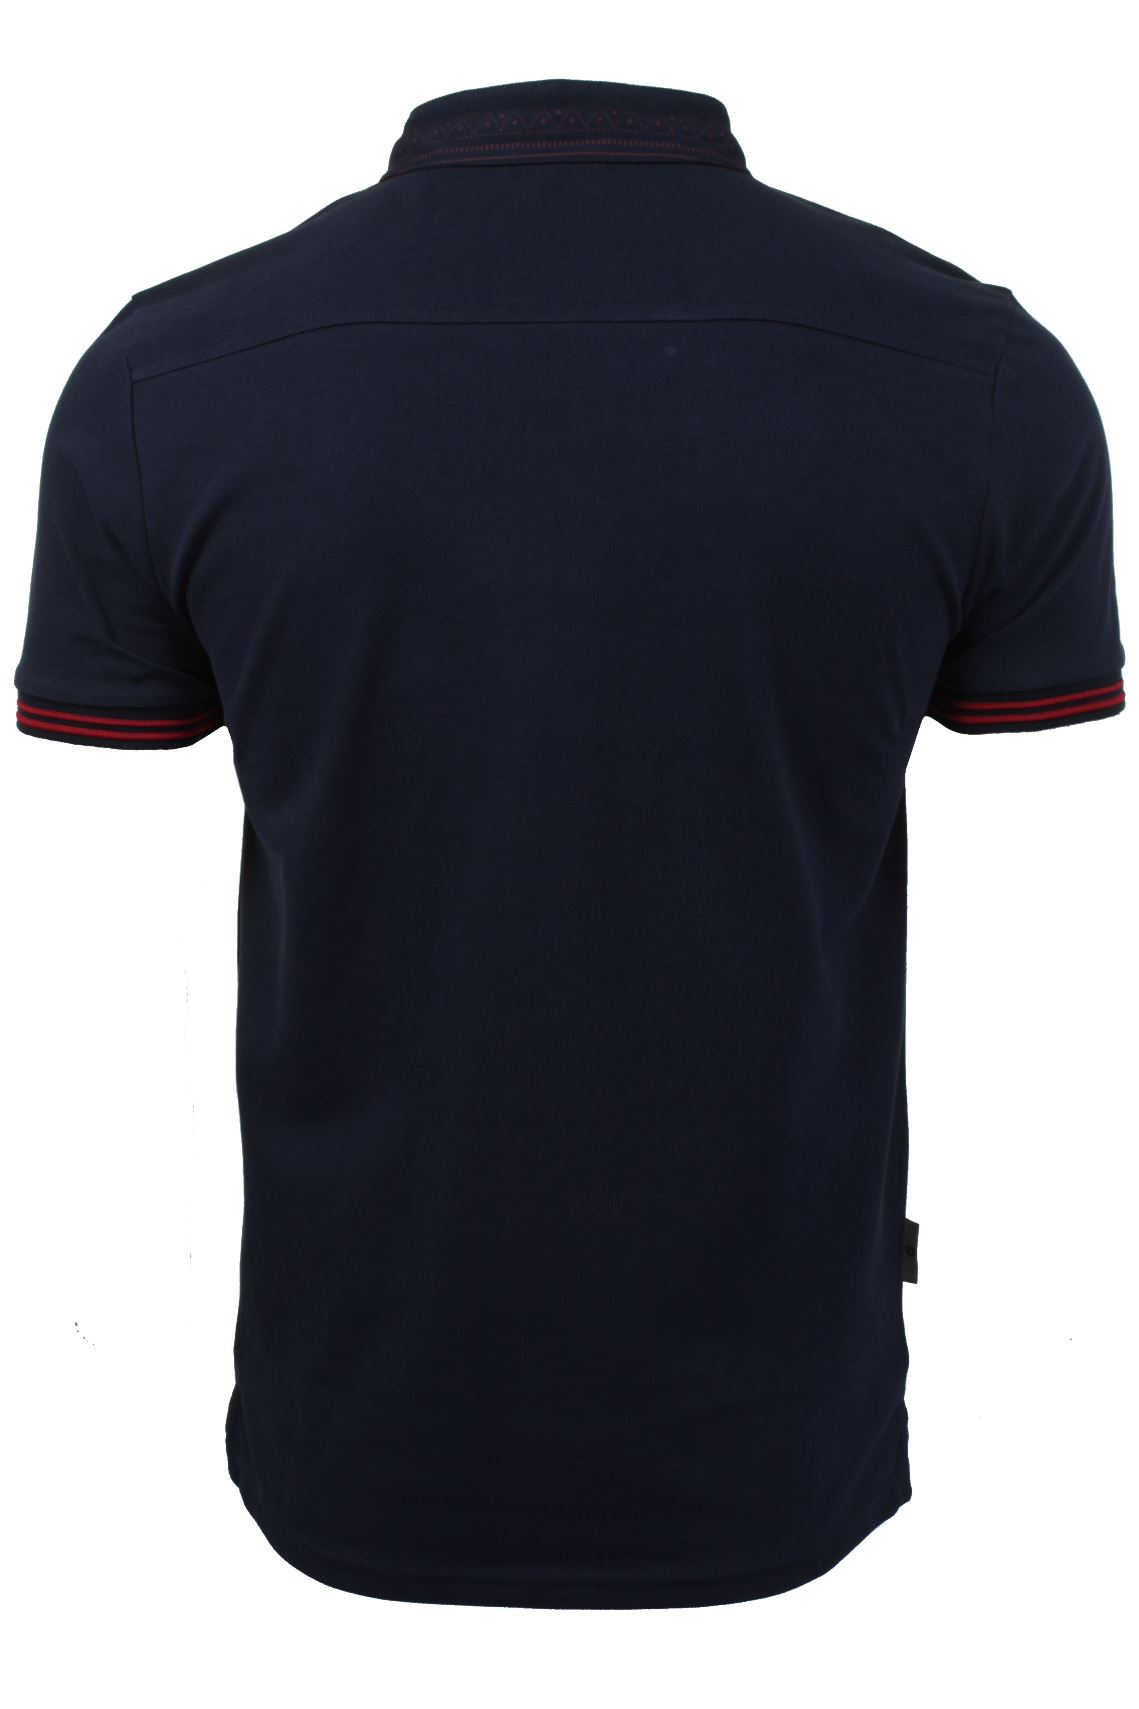 Mens-Polo-T-Shirt-by-Voi-Jeans-039-Winters-039 thumbnail 8